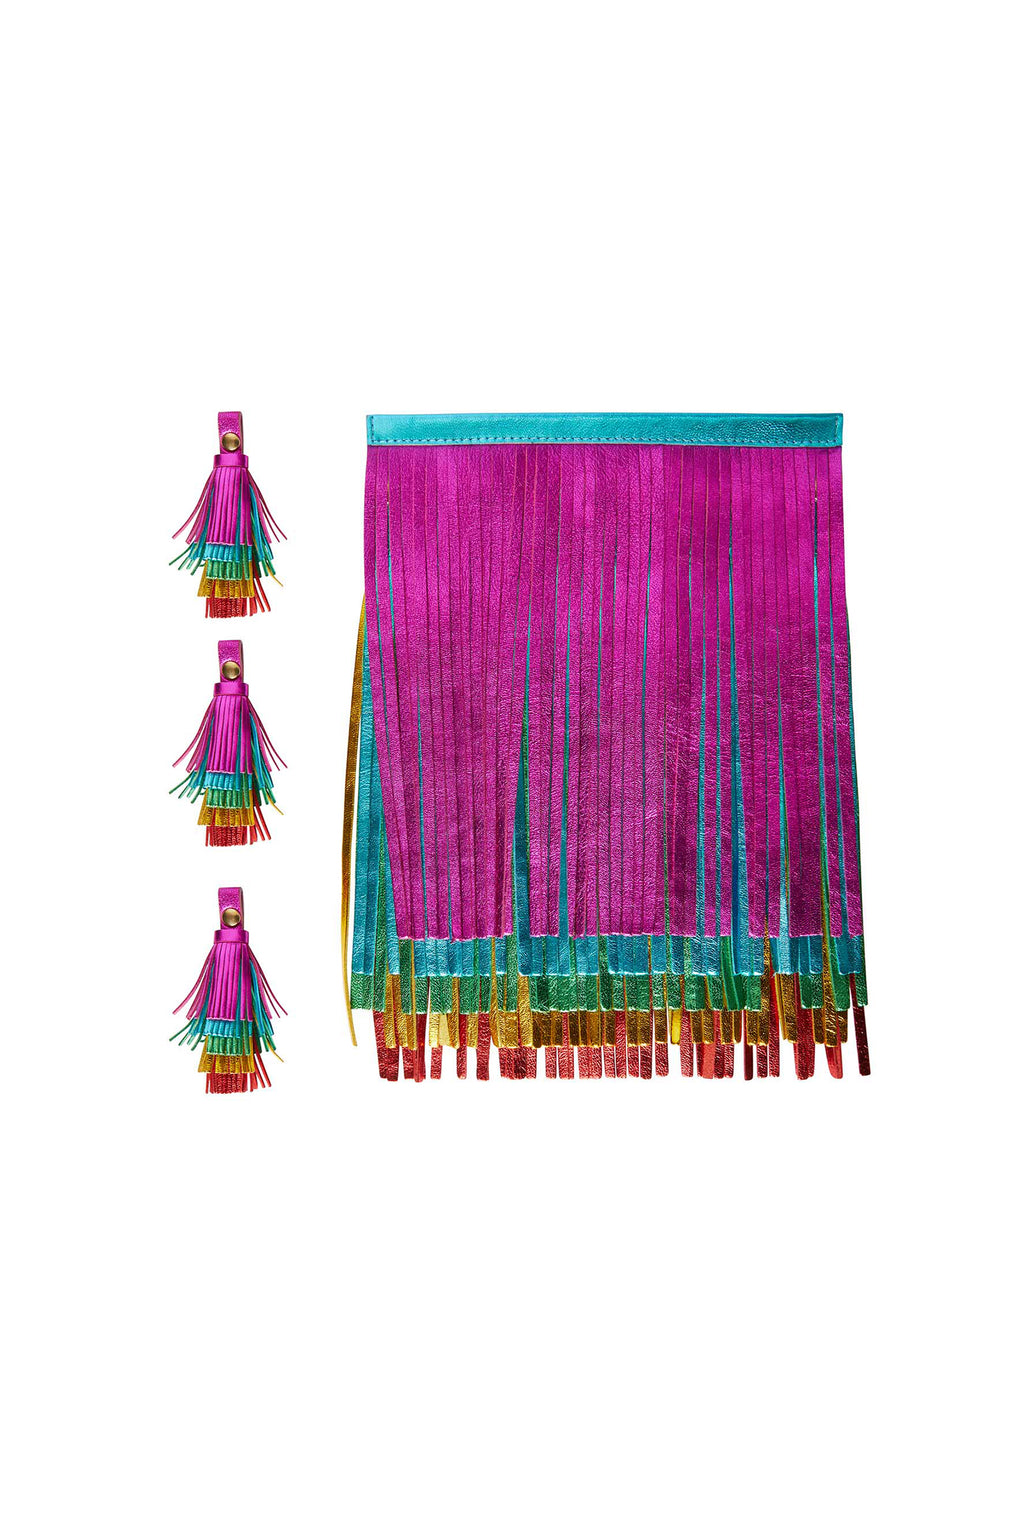 Rainbow Leather Tassels and Zip Pullers Set for Tassel Bags